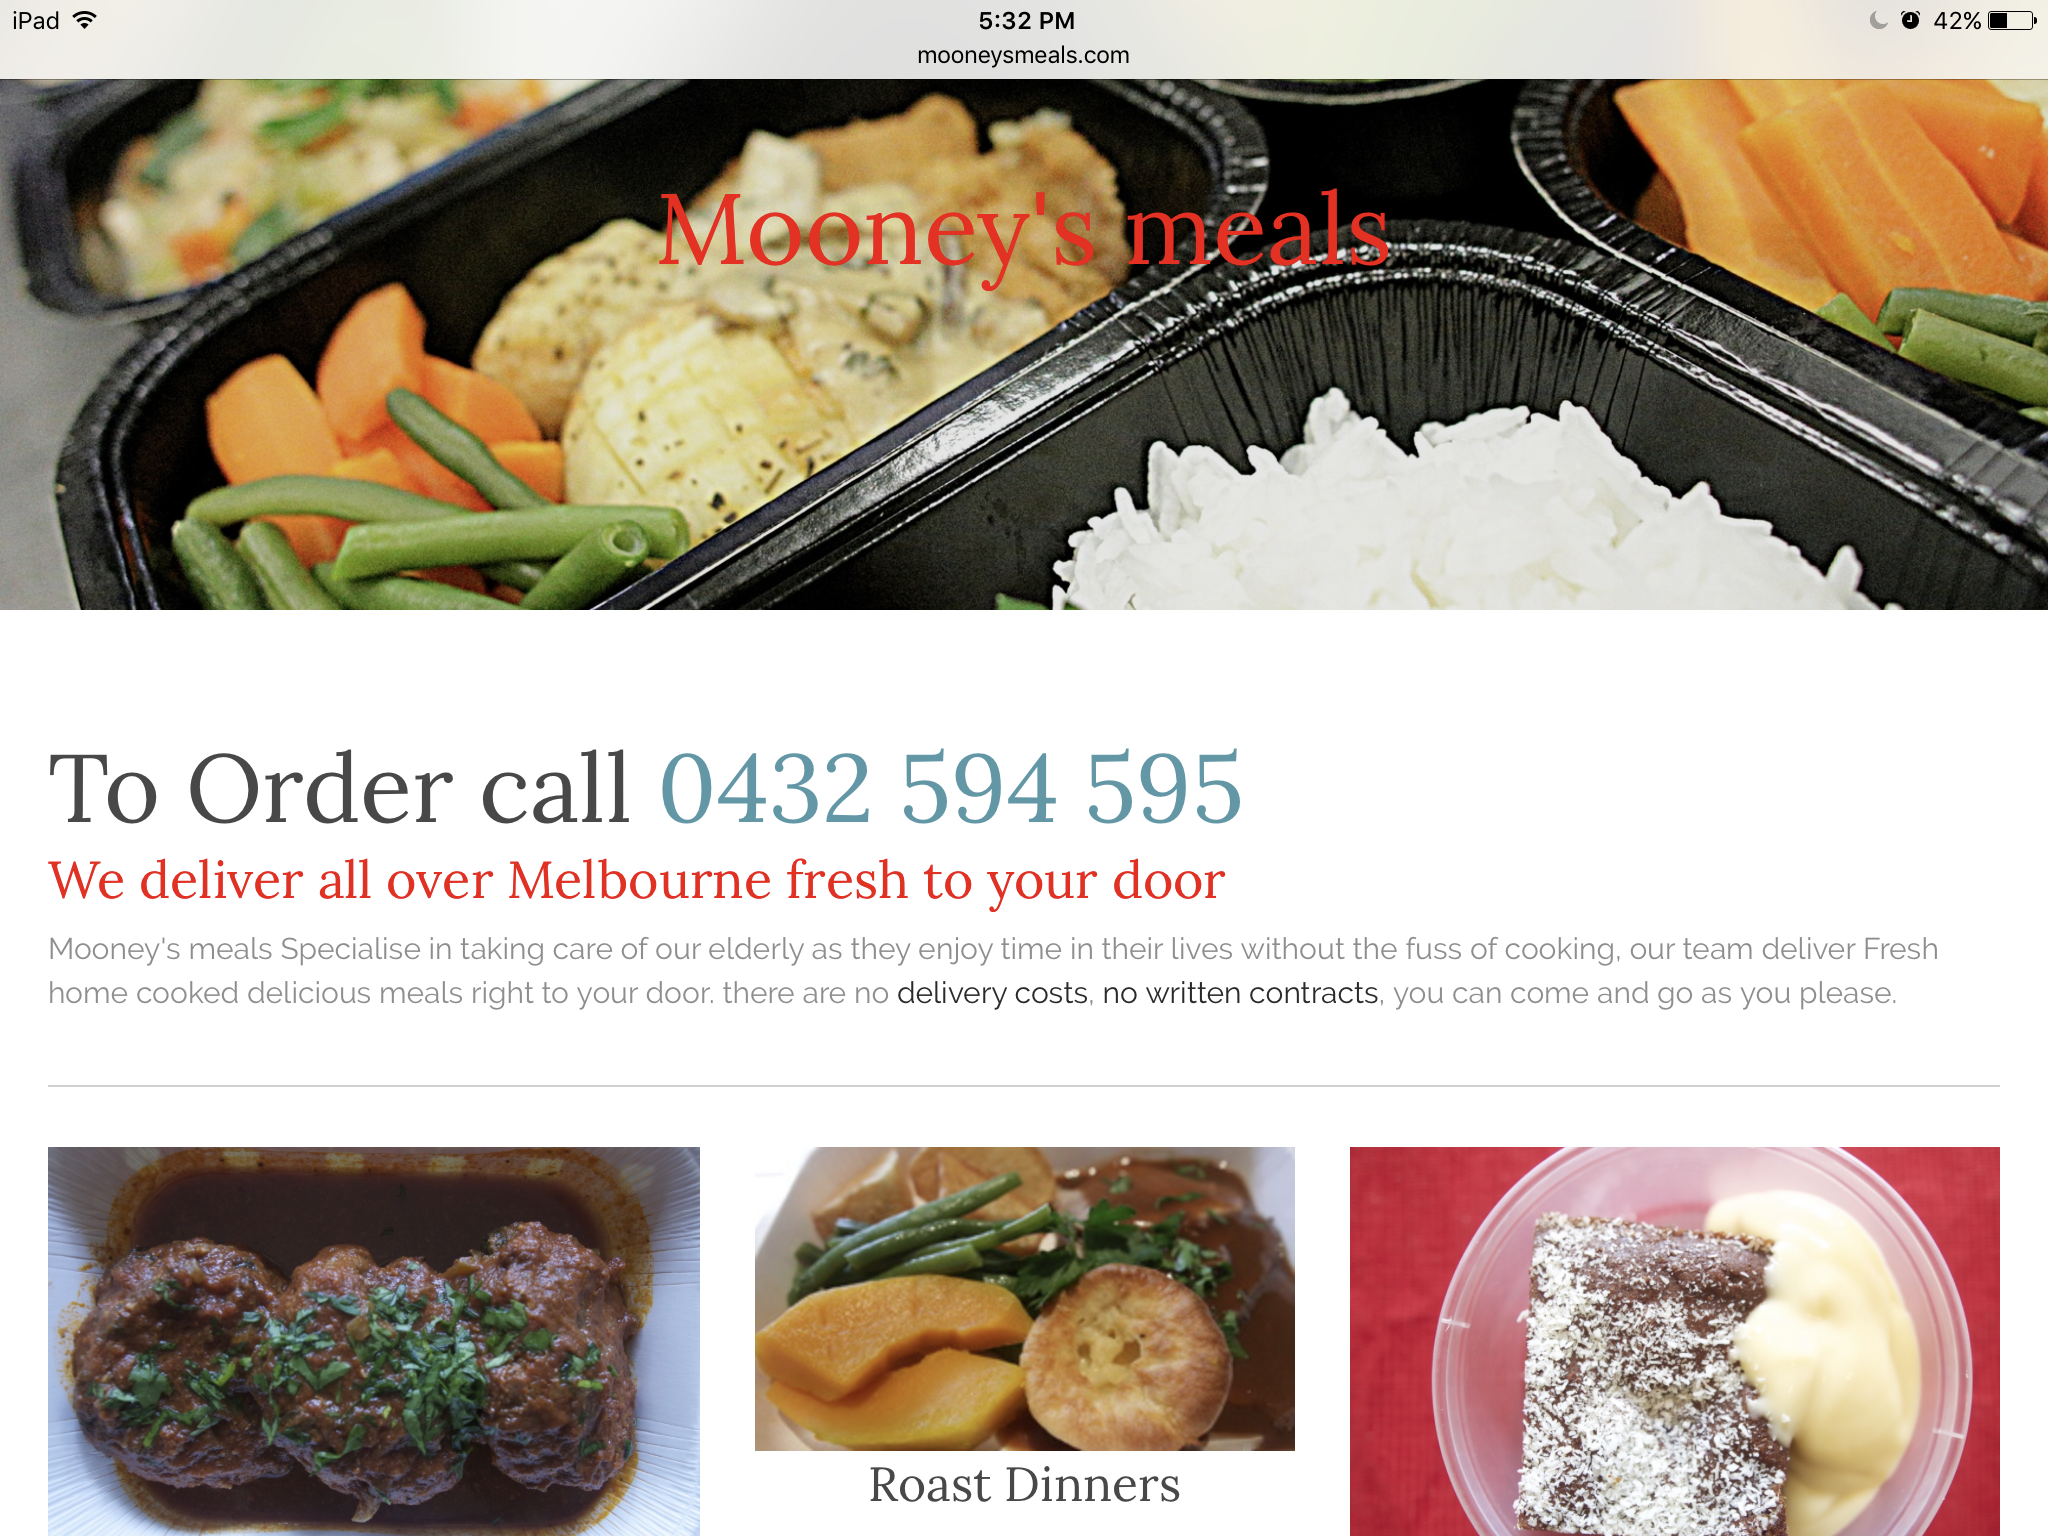 Ready made meals delivered to your door freshly made localproduce ready made meals delivered to your door freshly made localproduce forumfinder Image collections